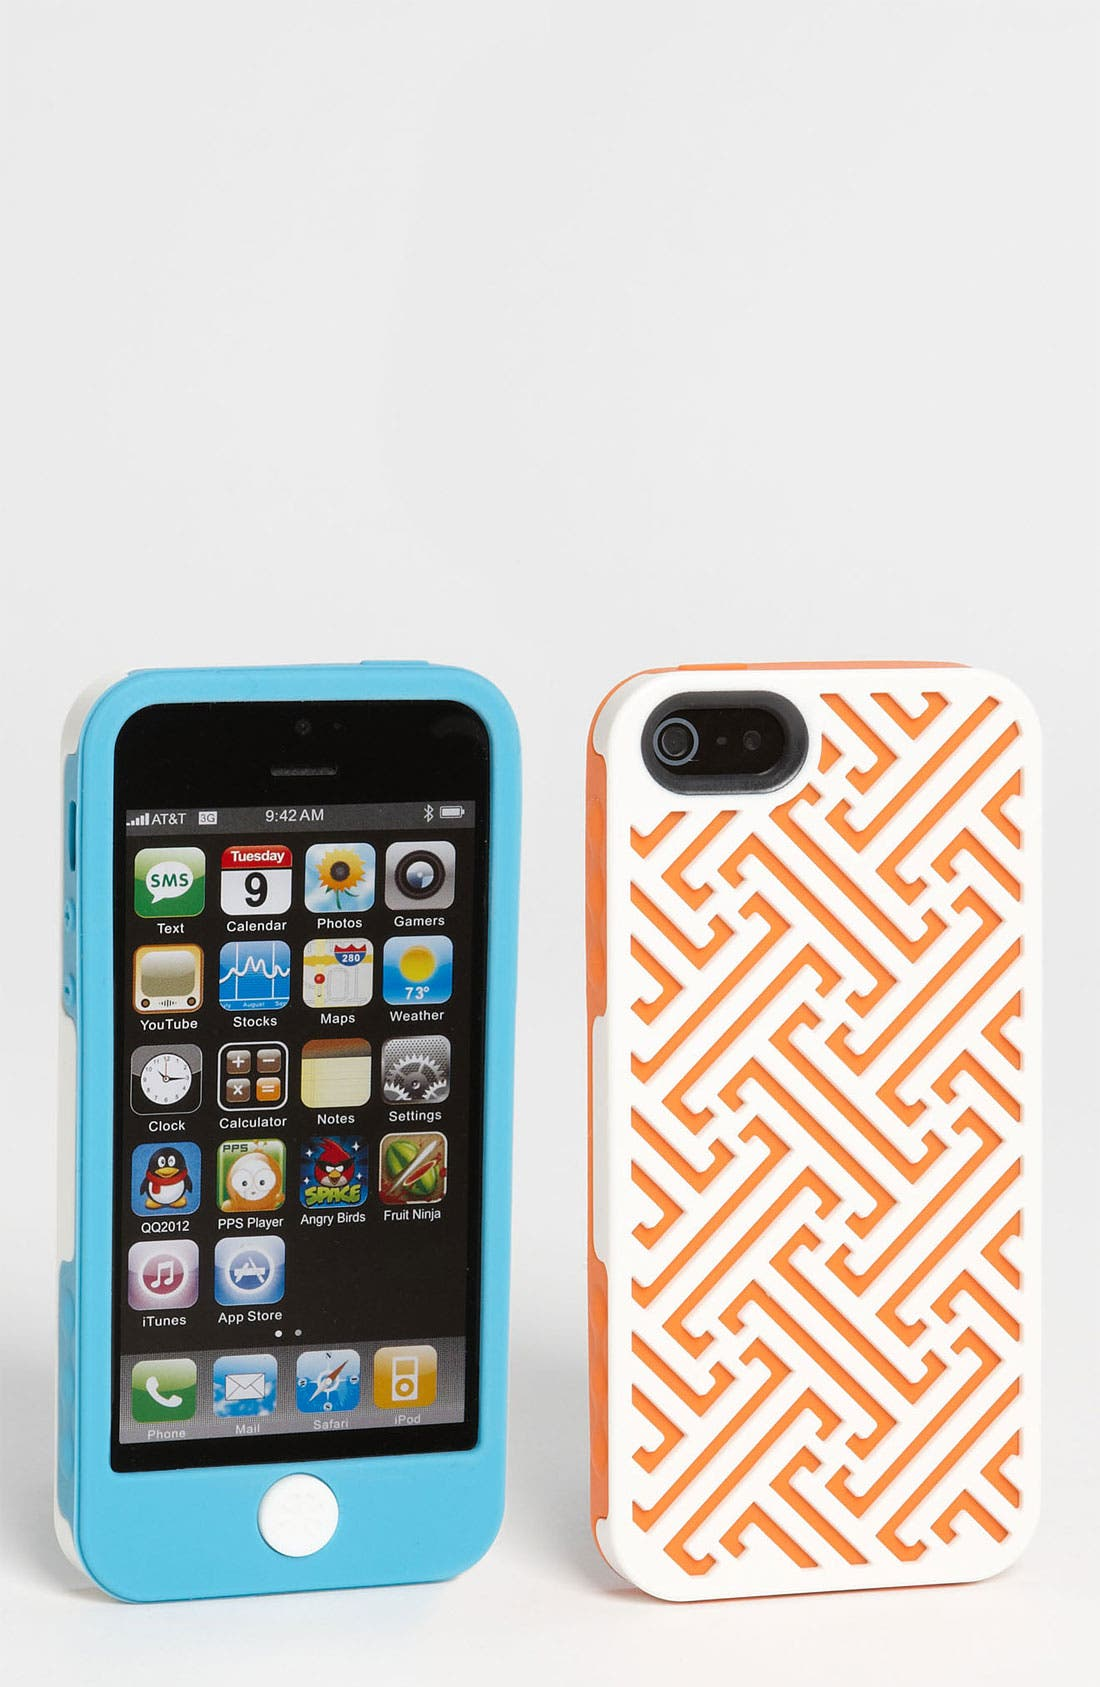 Main Image - Tech Candy 'Athens' iPhone 5 Silicone Case Set